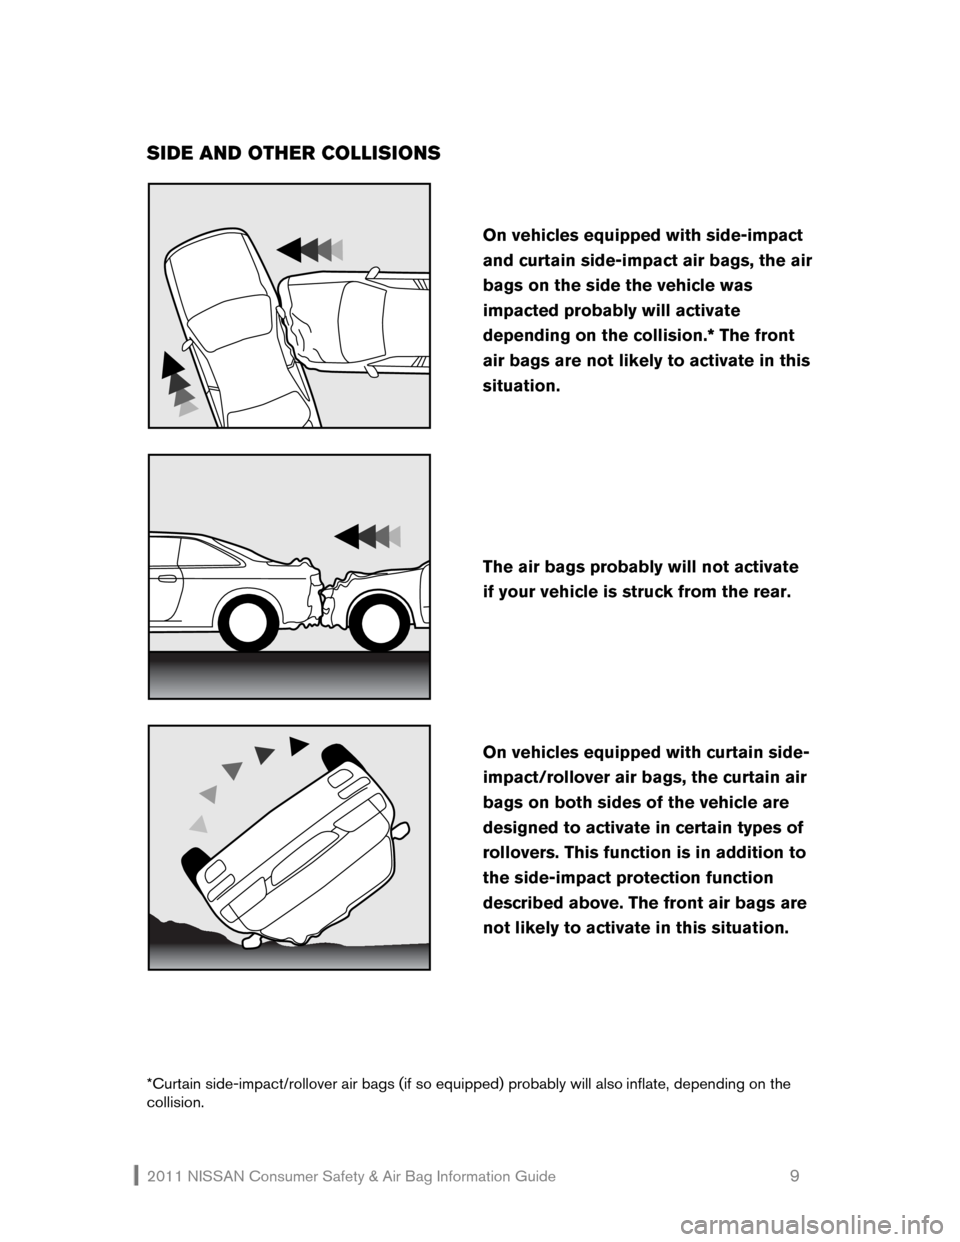 NISSAN ROGUE 2011 1.G Consumer Safety Air Bag Information Guide 2011 NISSAN Consumer Safety & Air Bag Information Guide                                                       9  SIDE AND OTHER COLLISIONS            *Curtain side-impact/rollover air bags (if so equi